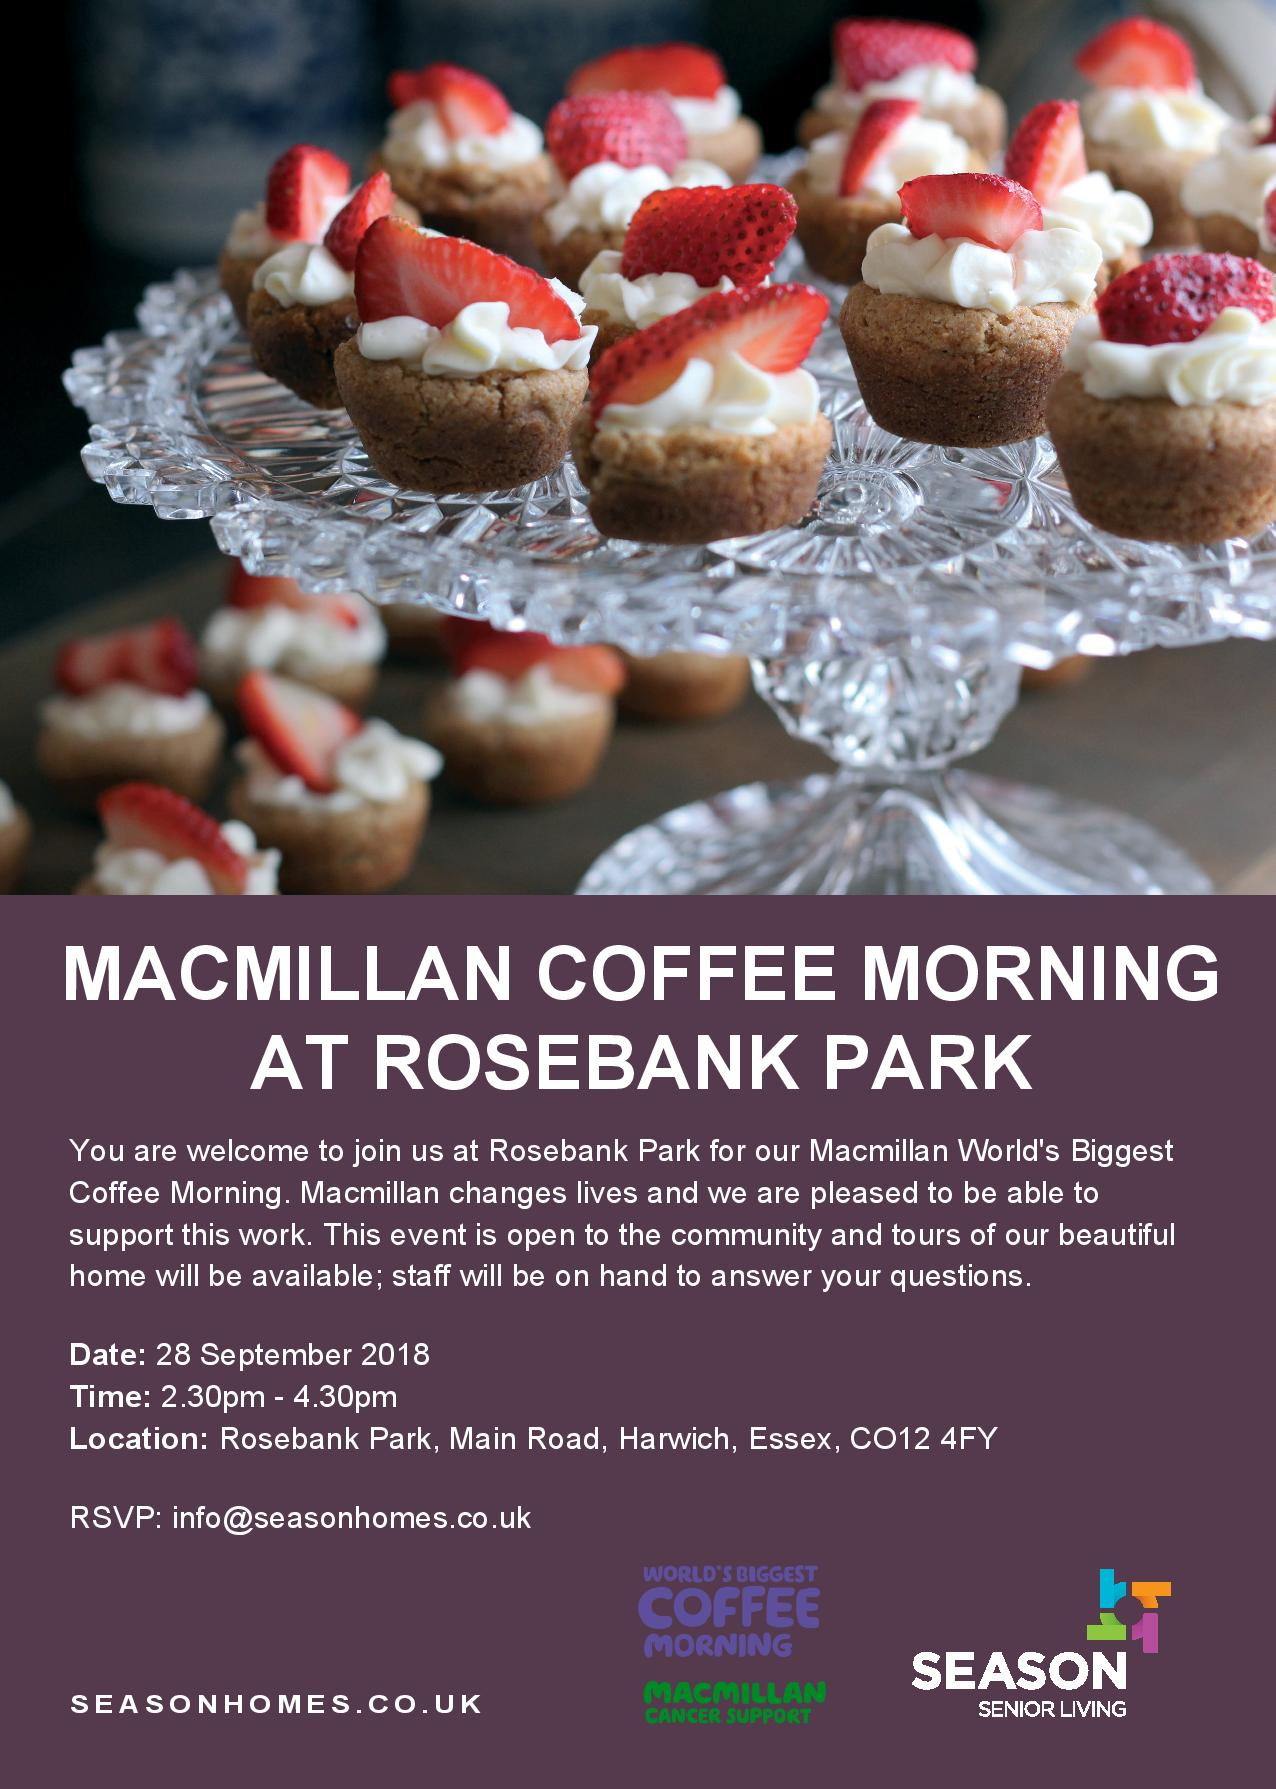 Macmillan Coffee Morning at Rosebank Park